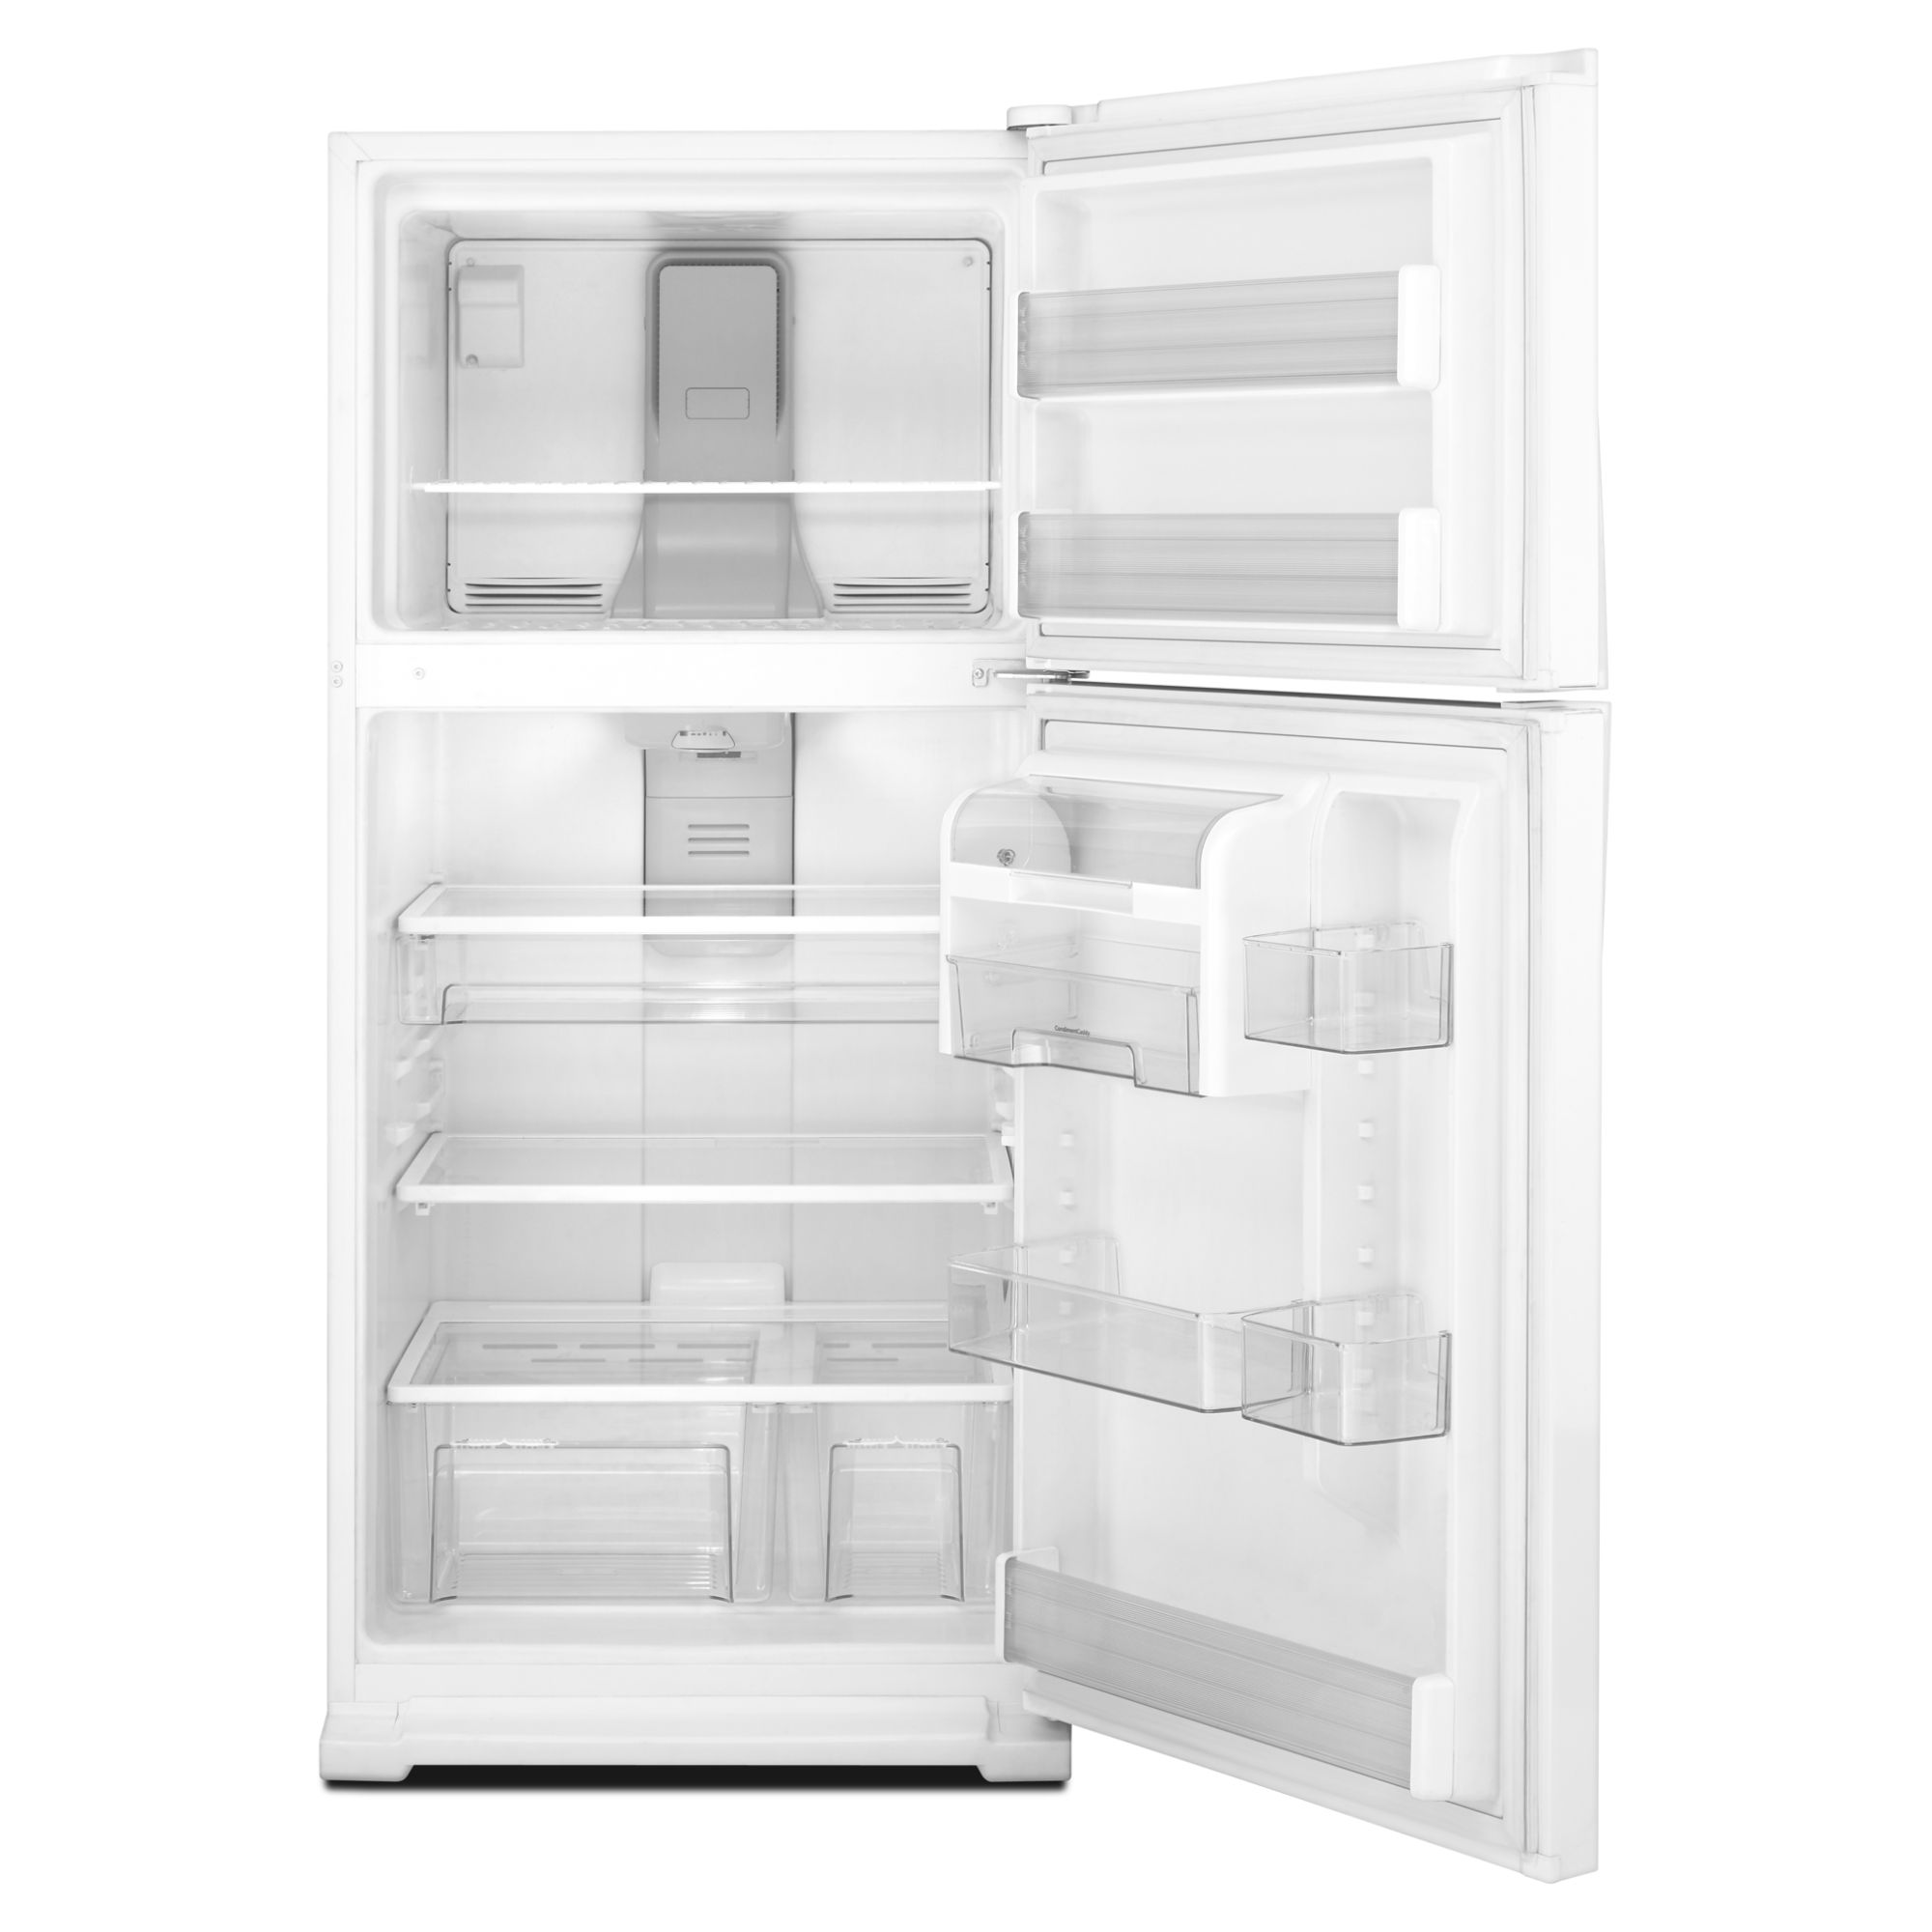 Whirlpool 18.9 cu. ft. Top-Freezer Refrigerator with CEE Tier 3 Rating